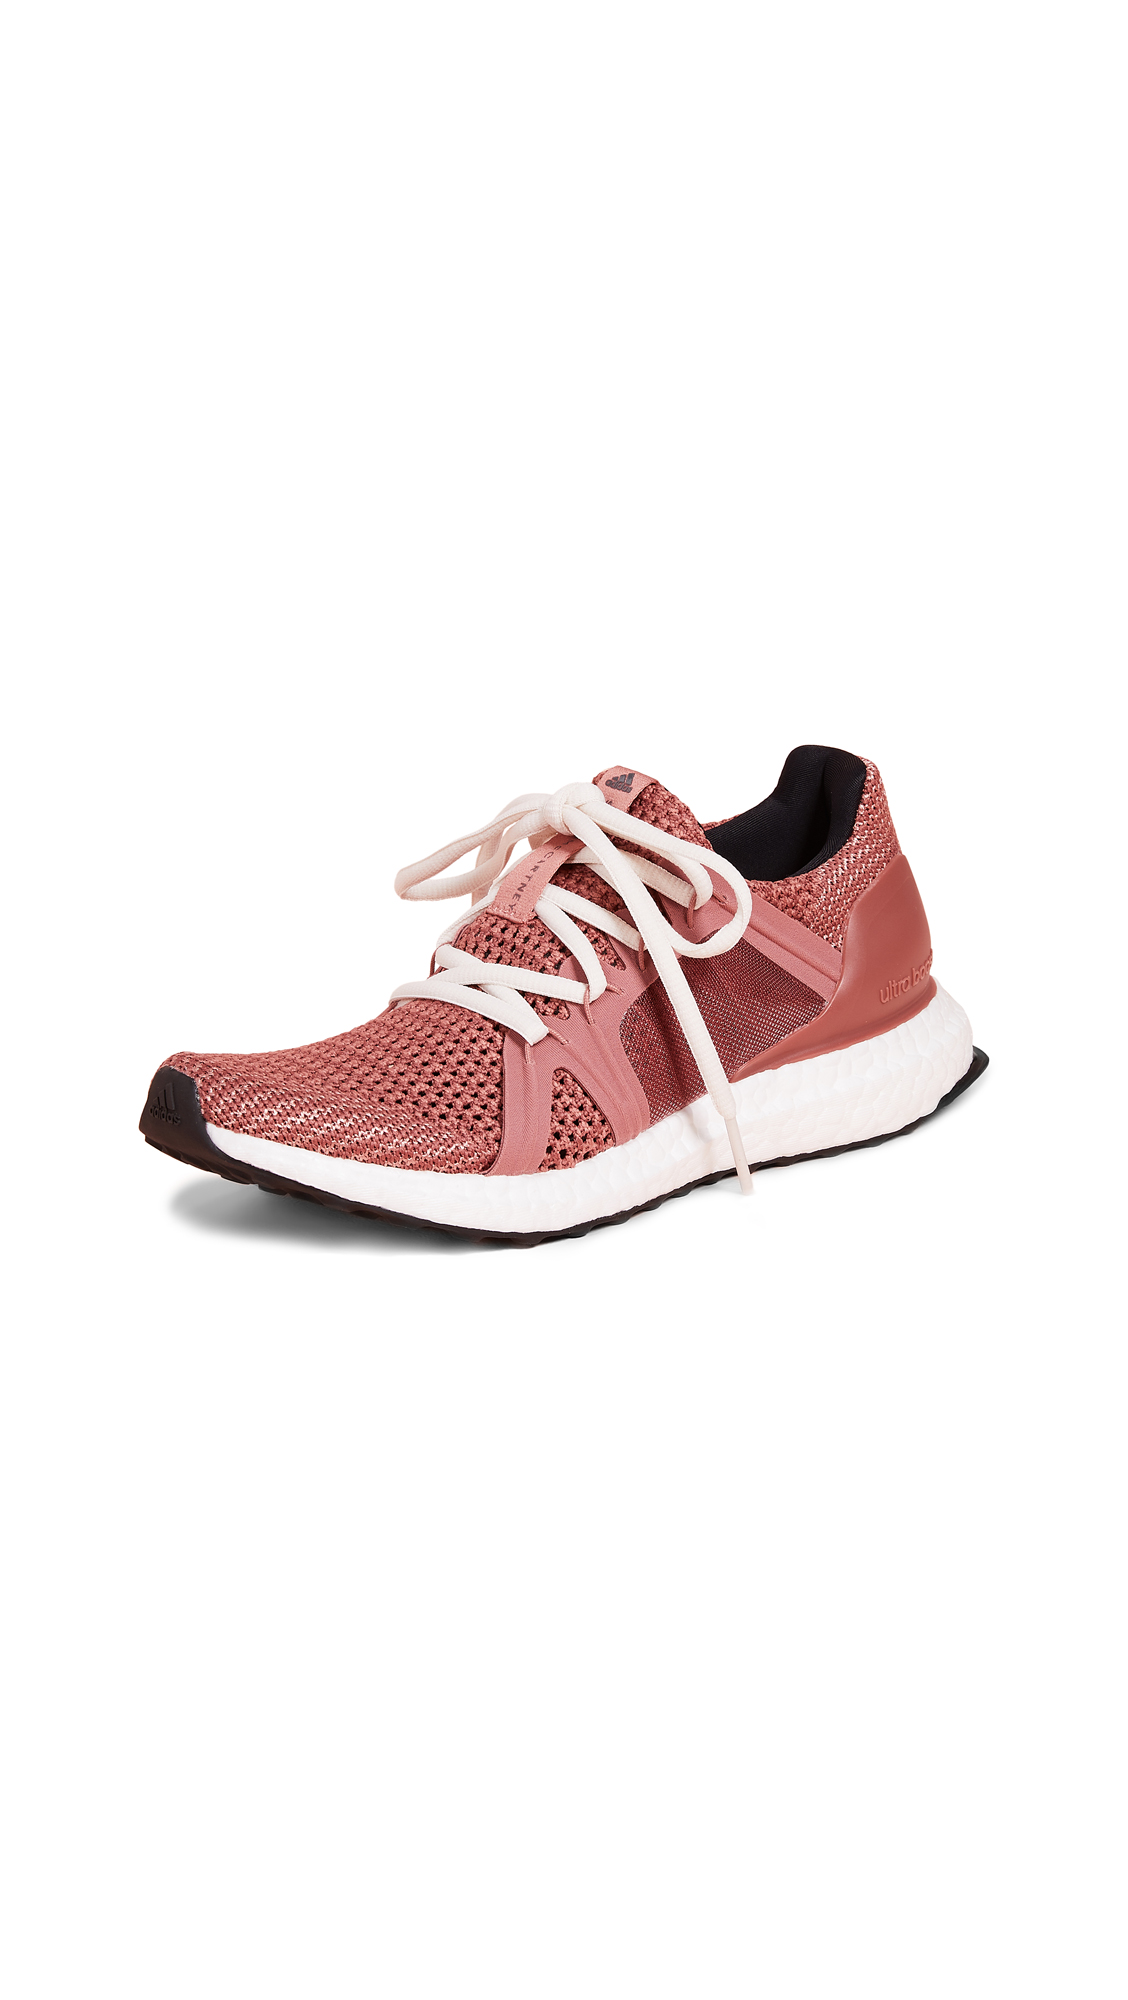 adidas by Stella McCartney UltraBOOST Sneakers - Pink/Coffee Rose/Black